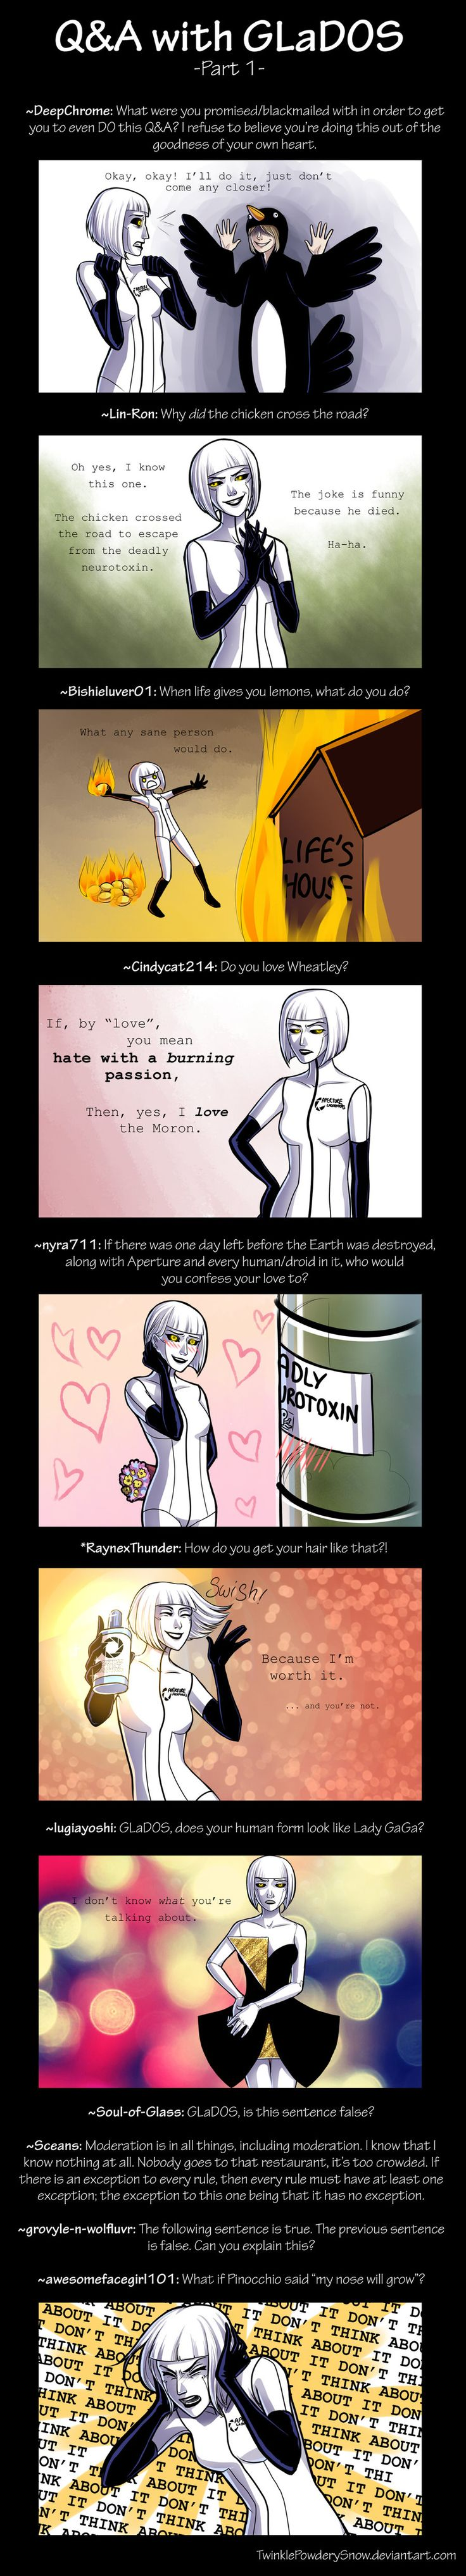 Q and A With GLaDOS by TwinklePowderySnow.deviantart.com on @deviantART-- it's even better if you read it in her voice